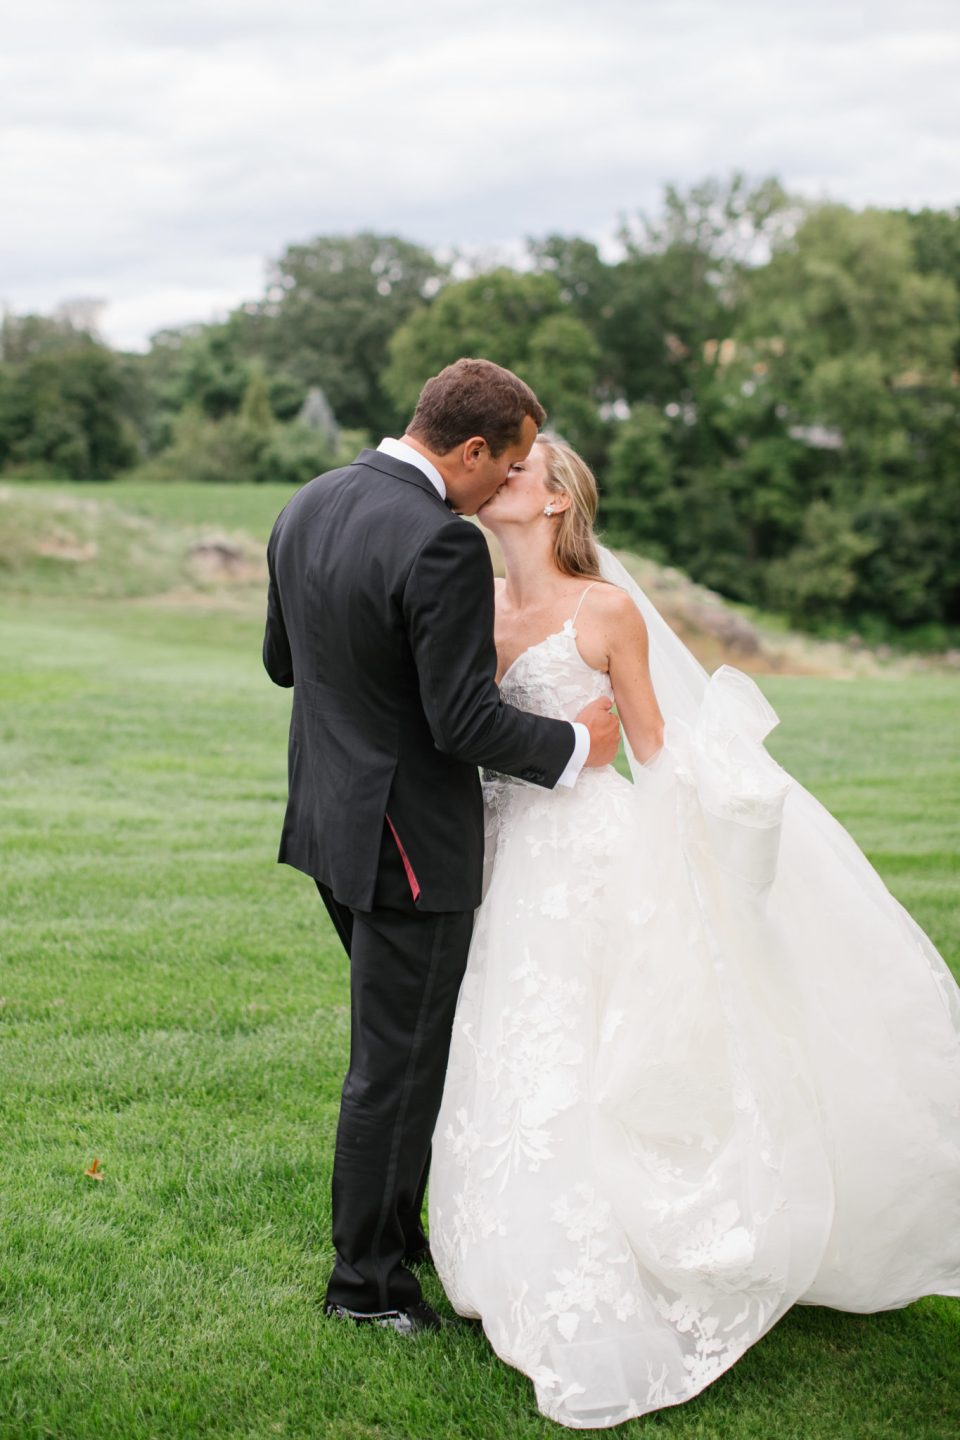 NY wedding portraits on golf course by Ashley Mac Photographs